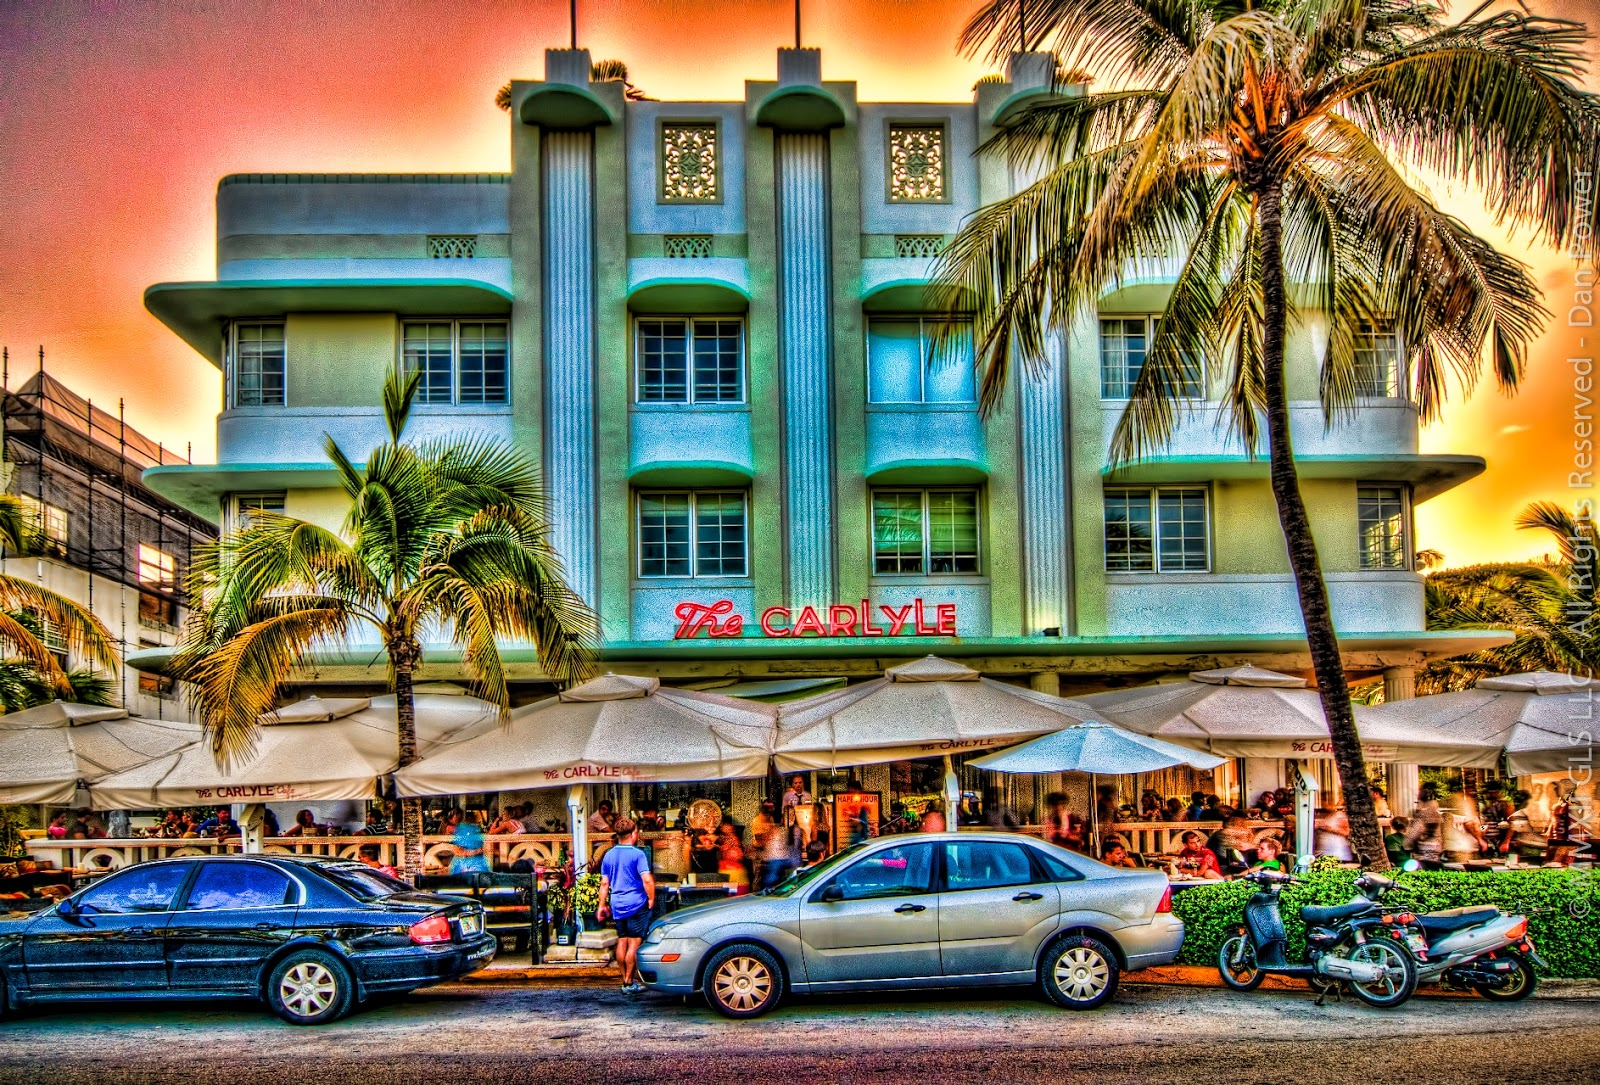 Art Deco Tours popular Miami activity